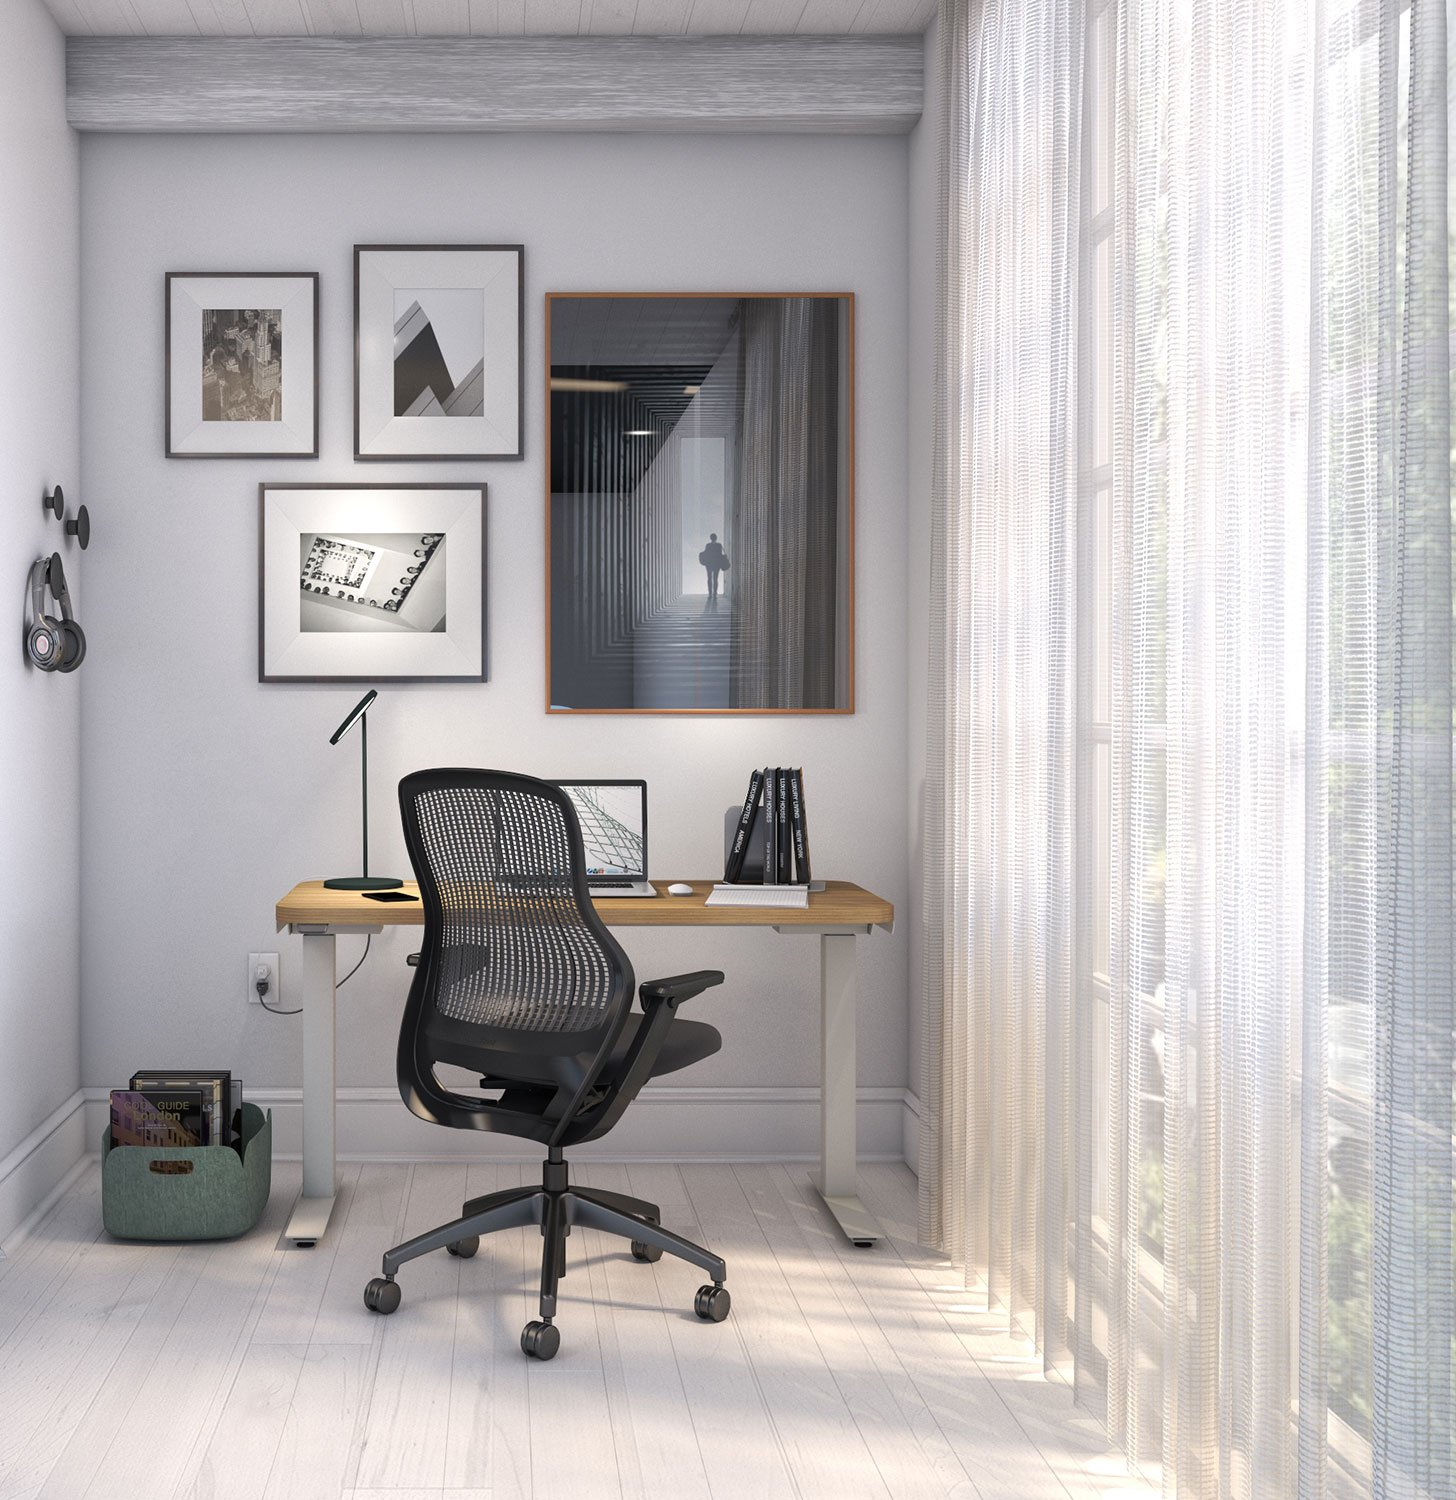 Hipso Height-Adjustable Desk with ReGeneration by Knoll Task Chair and Muuto accessories Work from Home Inspiration from Knoll and Muuto